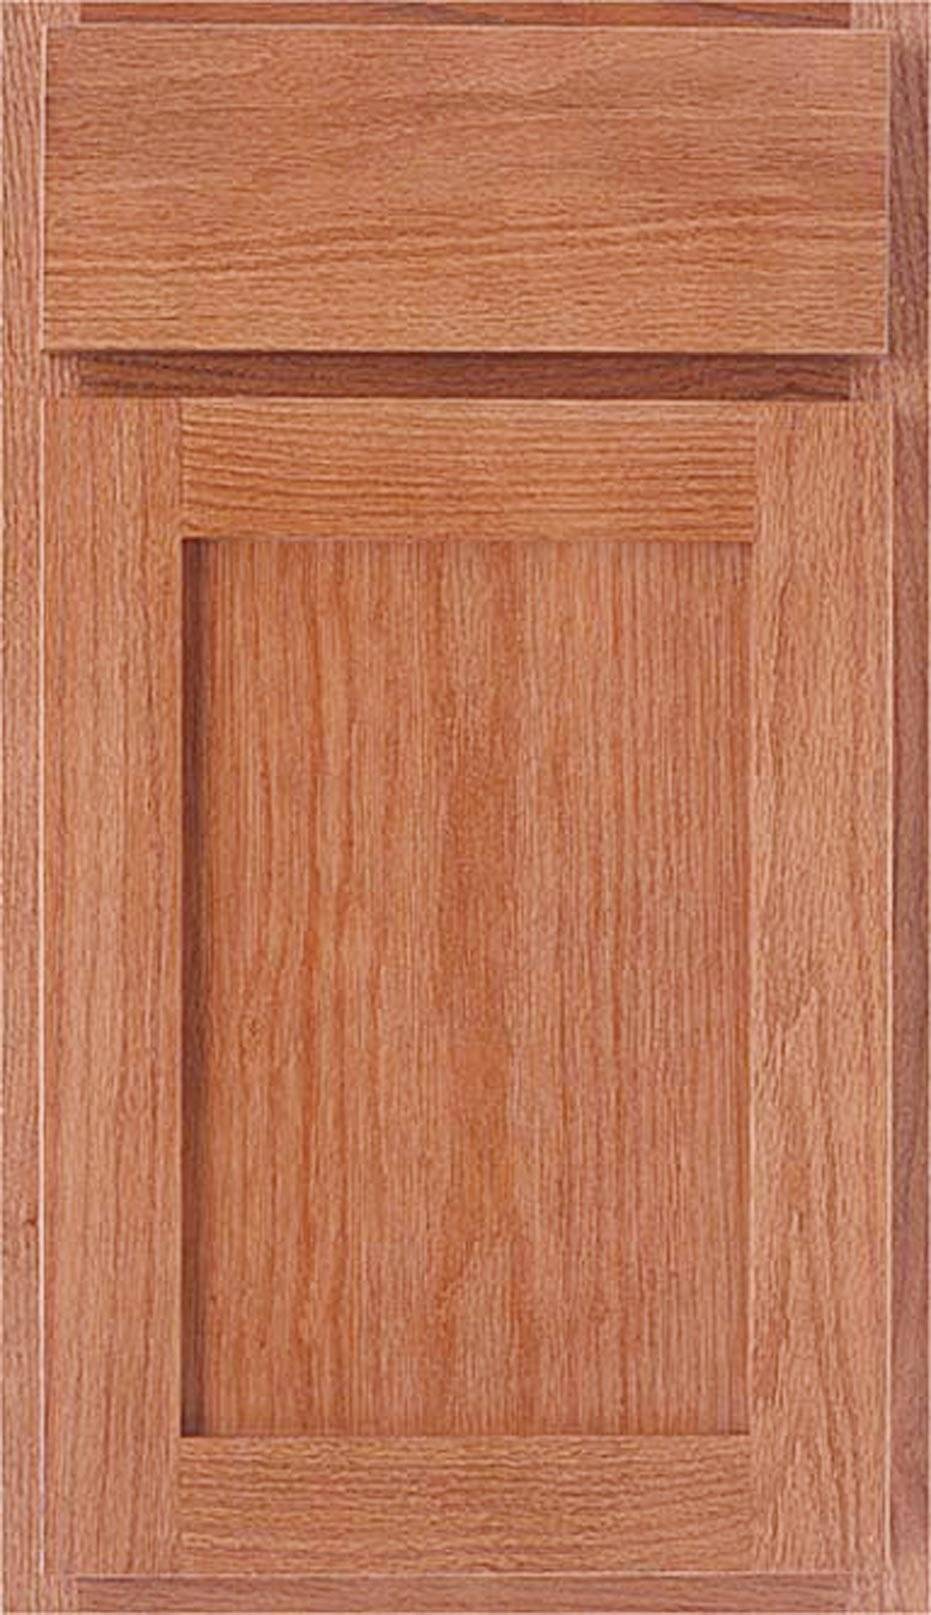 Shaker Style Kitchen Cabinet Doors 2 Spotlat How To Build Shaker Cabinet Doors Style